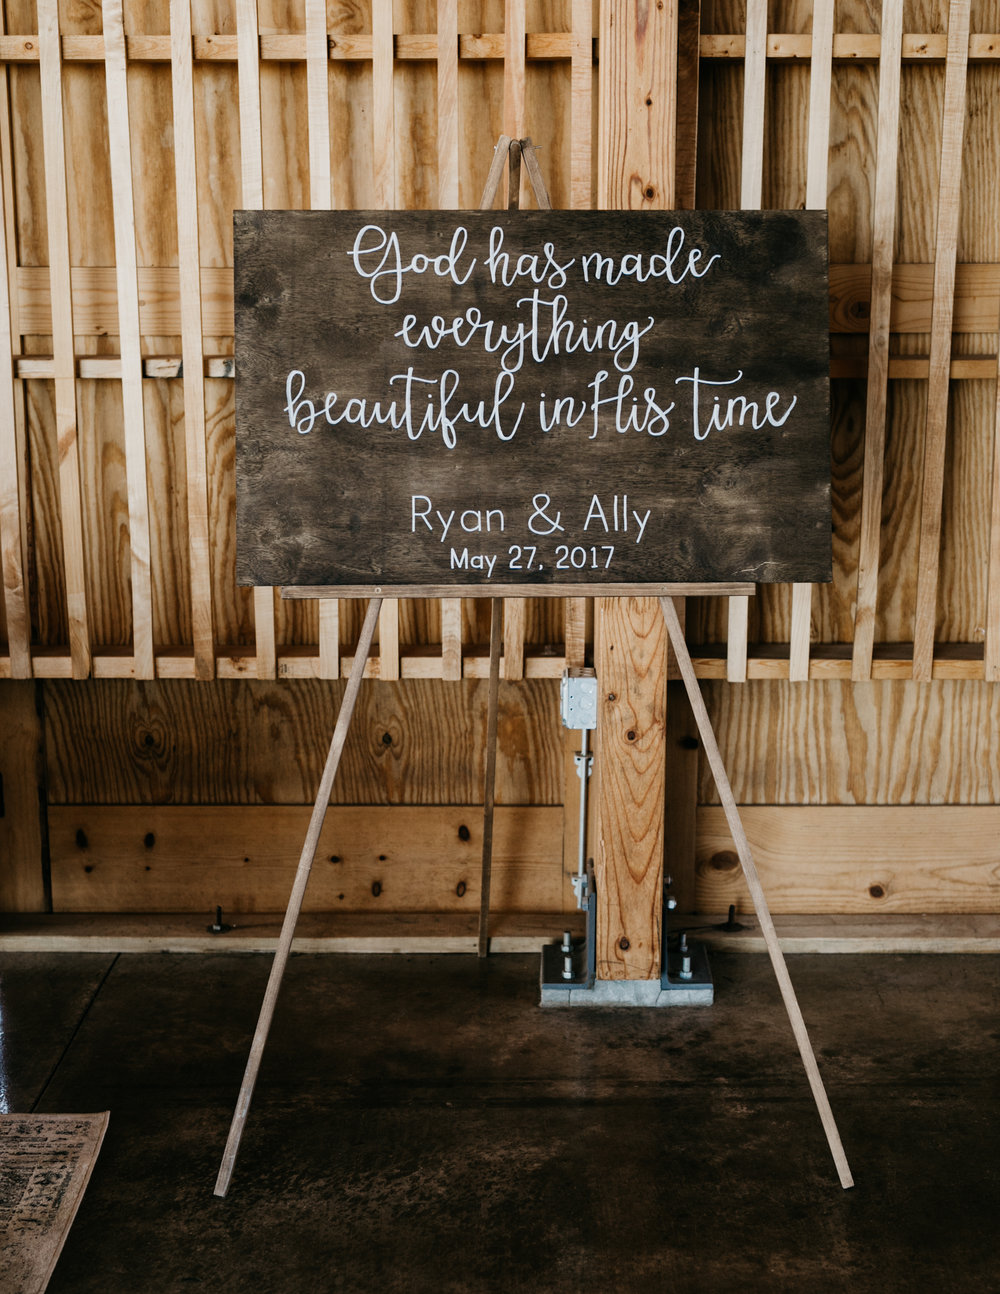 All You Need is Love and Doughnuts!  - with Tremaine Ranch - Arizona Wedding & Event, Vintage, Furniture, Tableware, & Specialty Rentals in Phoenix, Tucson, Flagstaff, Sedona, Tempe, Chandler, Mesa, Gilbert, Prescott, Payson2.jpg